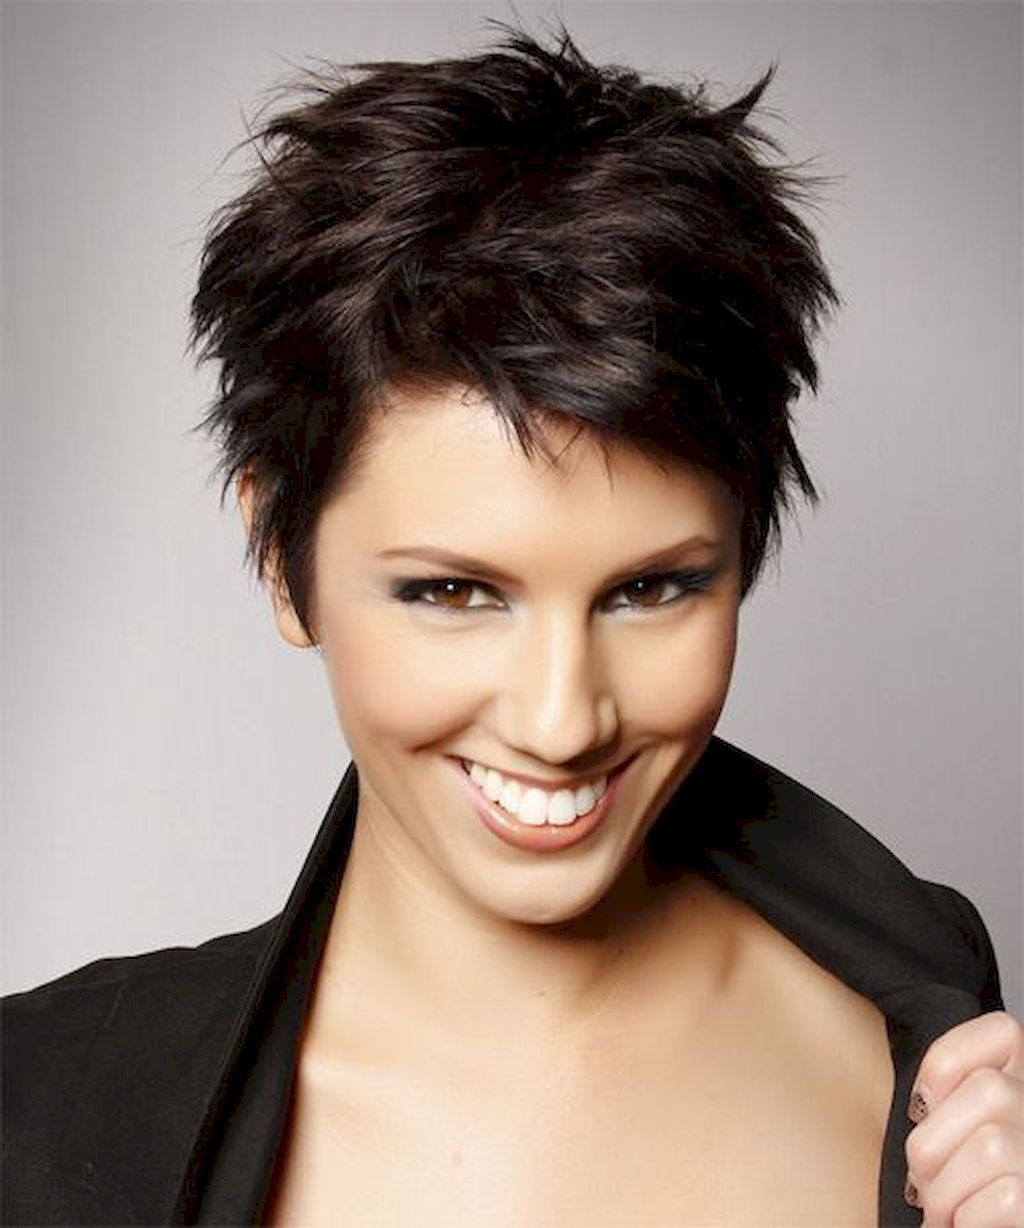 72 classy short pixie haircuts and hairstyles for thick hair | short